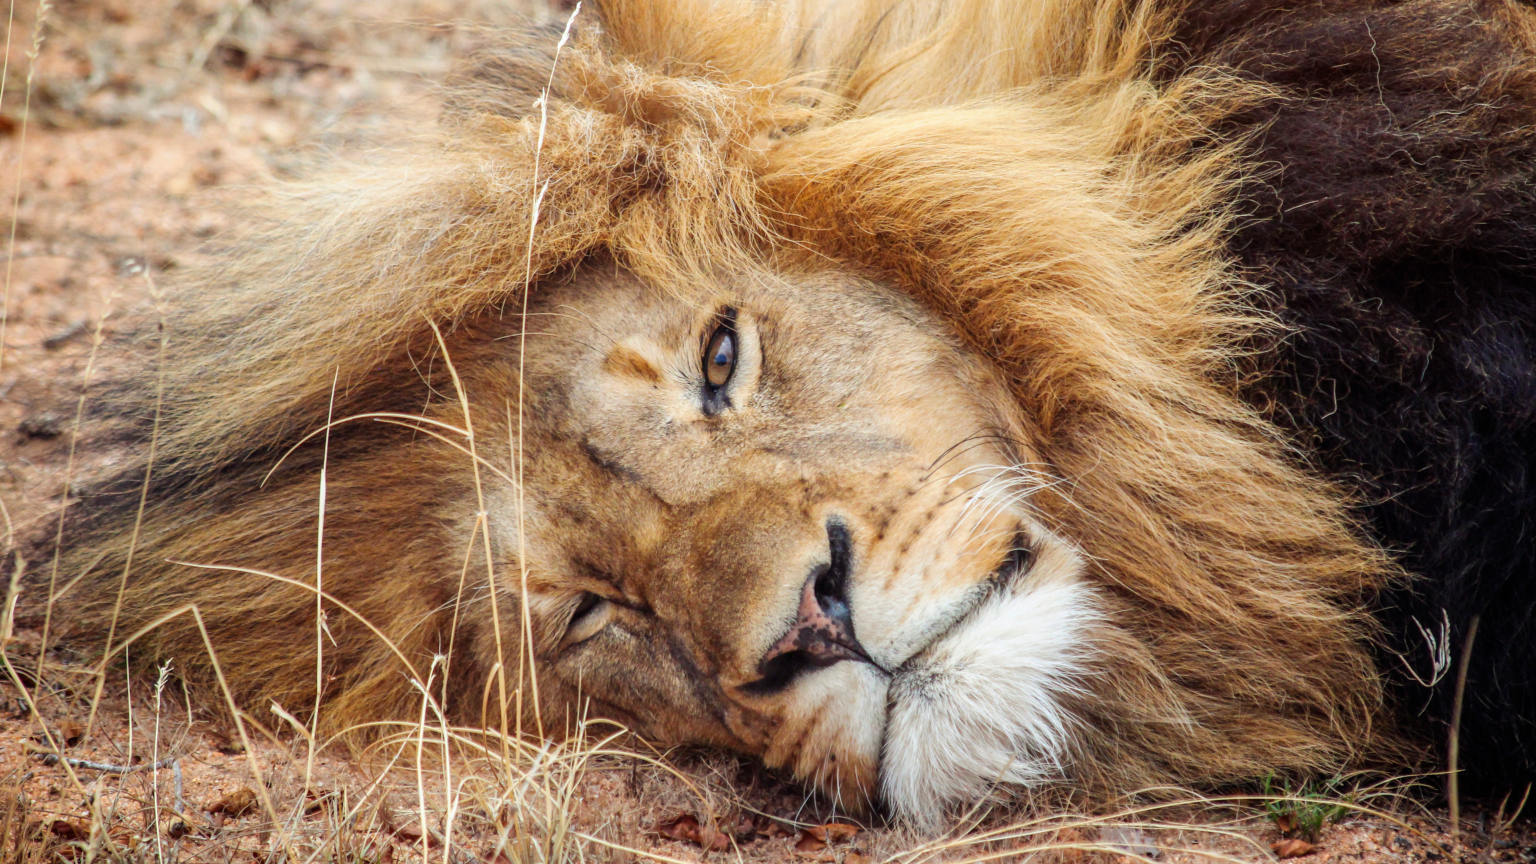 South-Africa-Lion-cropped